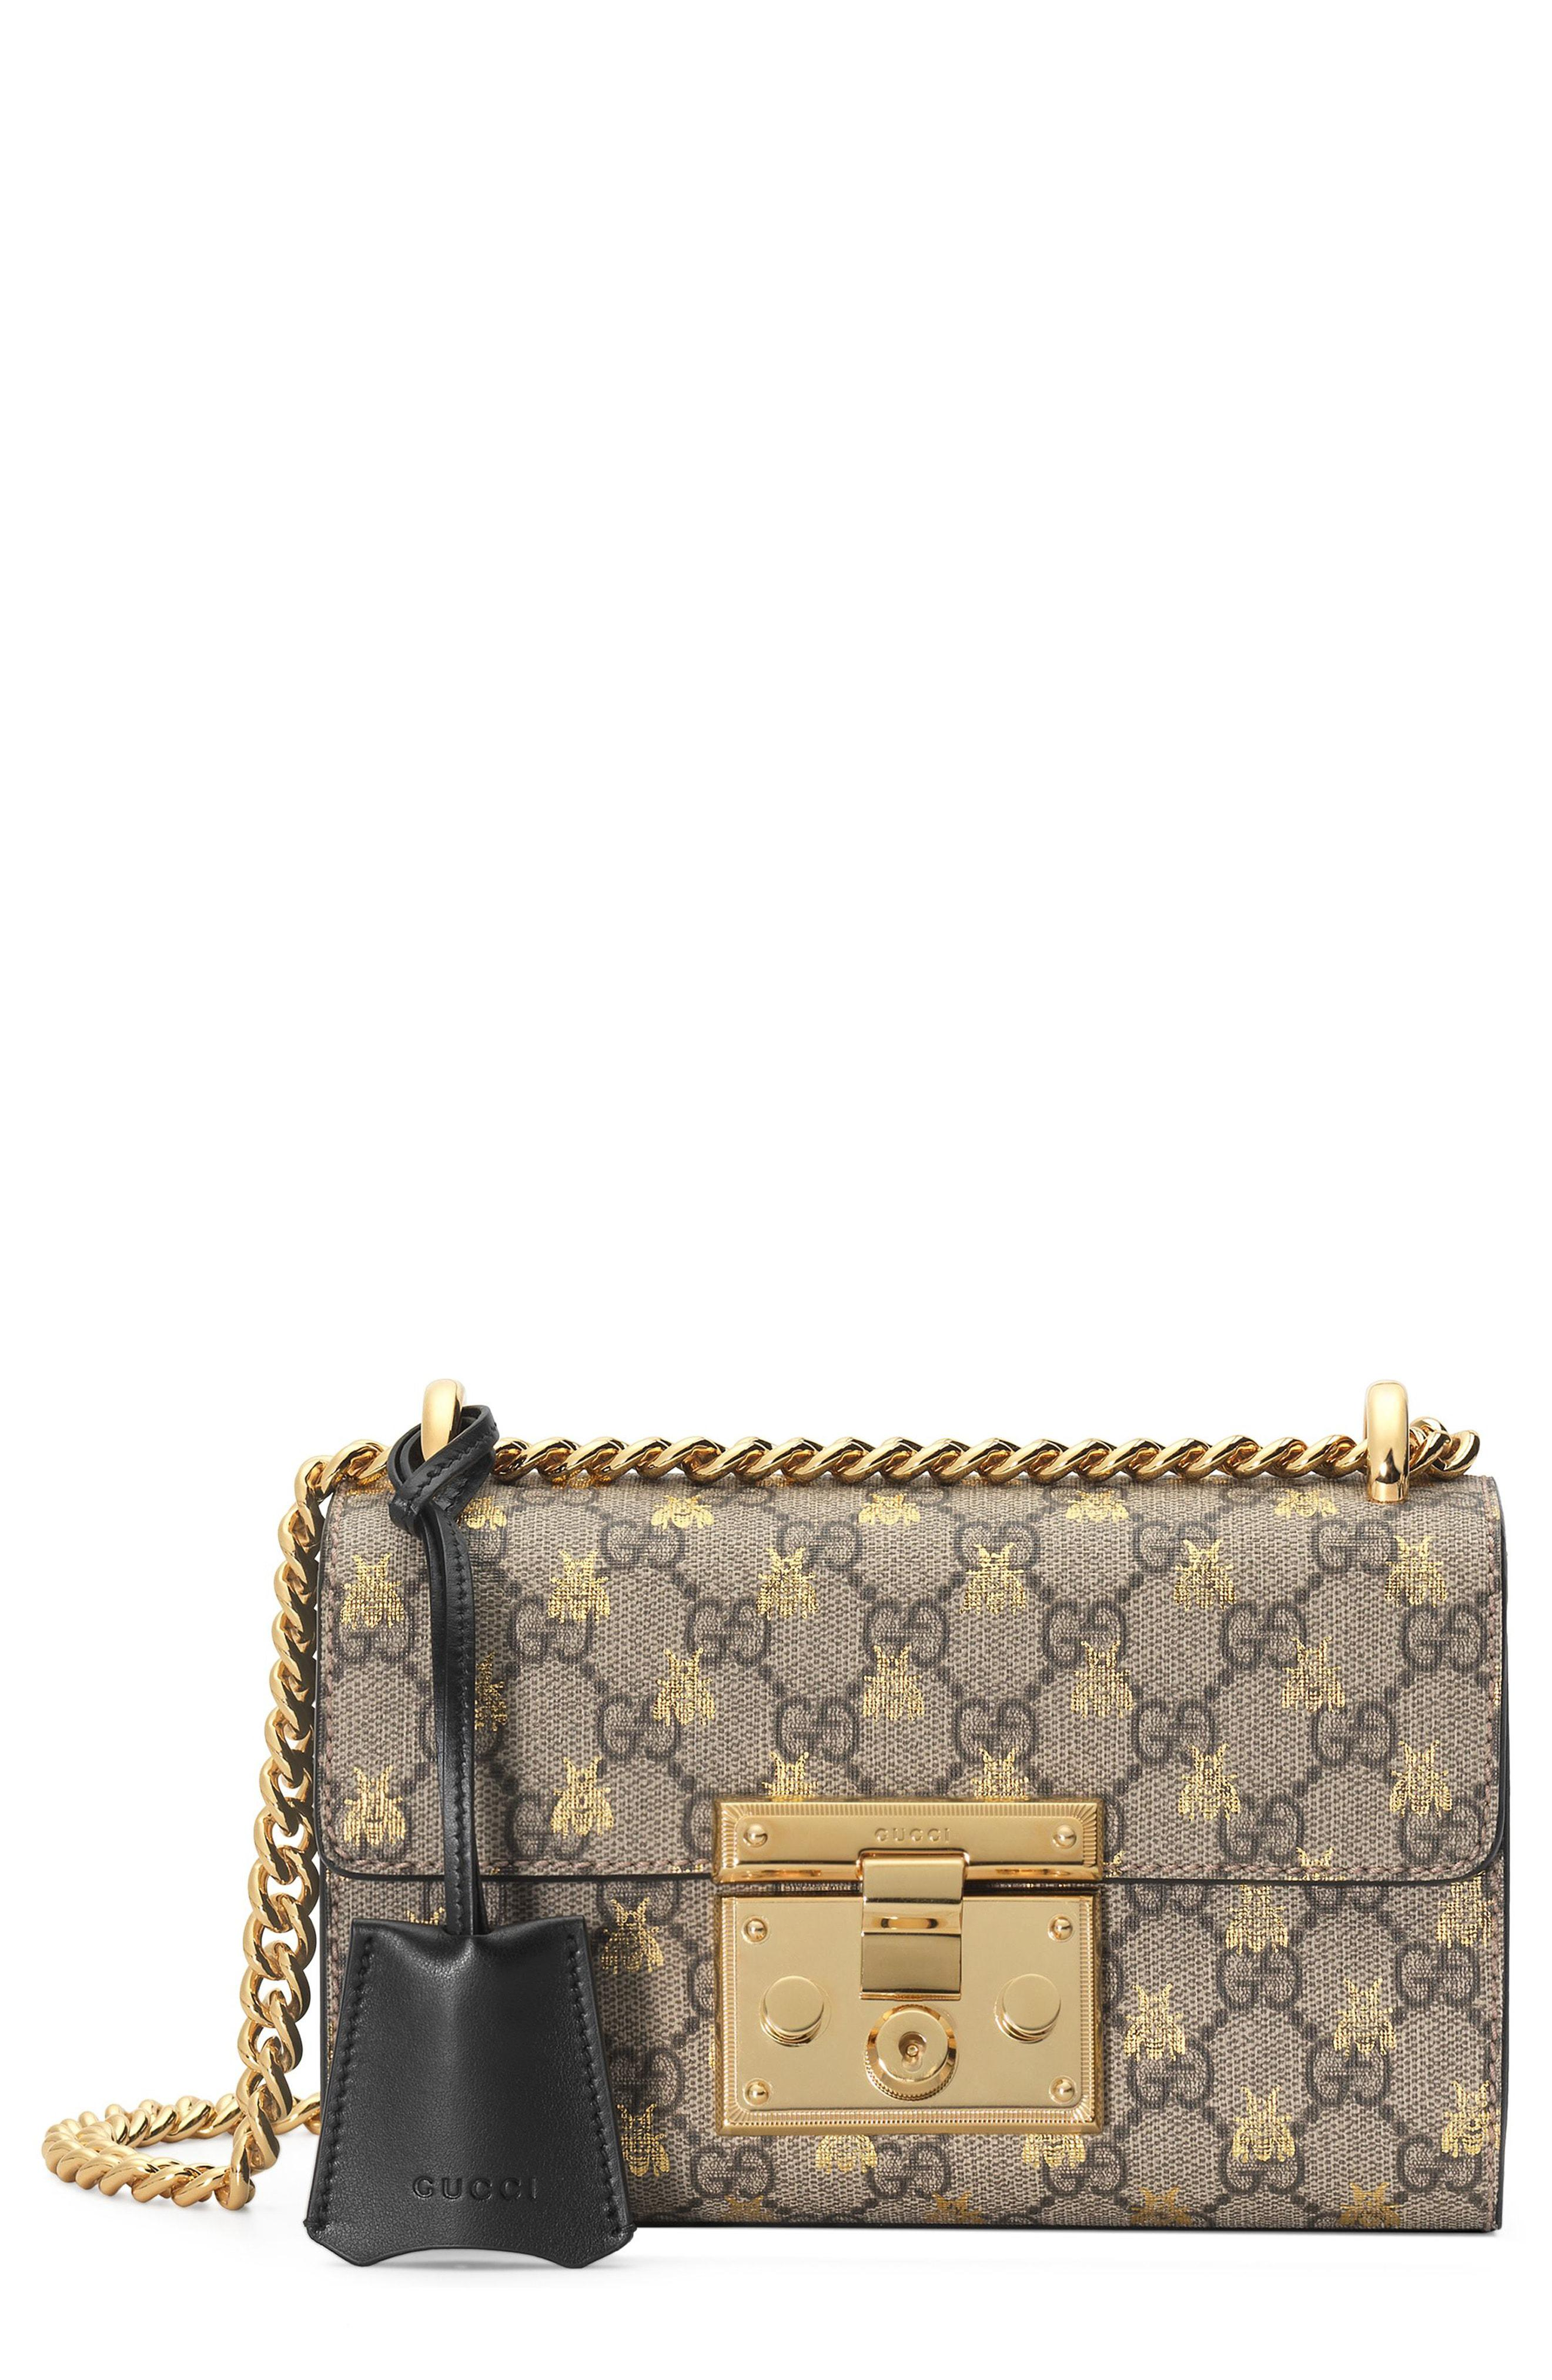 74278d0b004 Lyst - Gucci Gold GG Bees Padlock Small Shoulder Bag - Save 27%